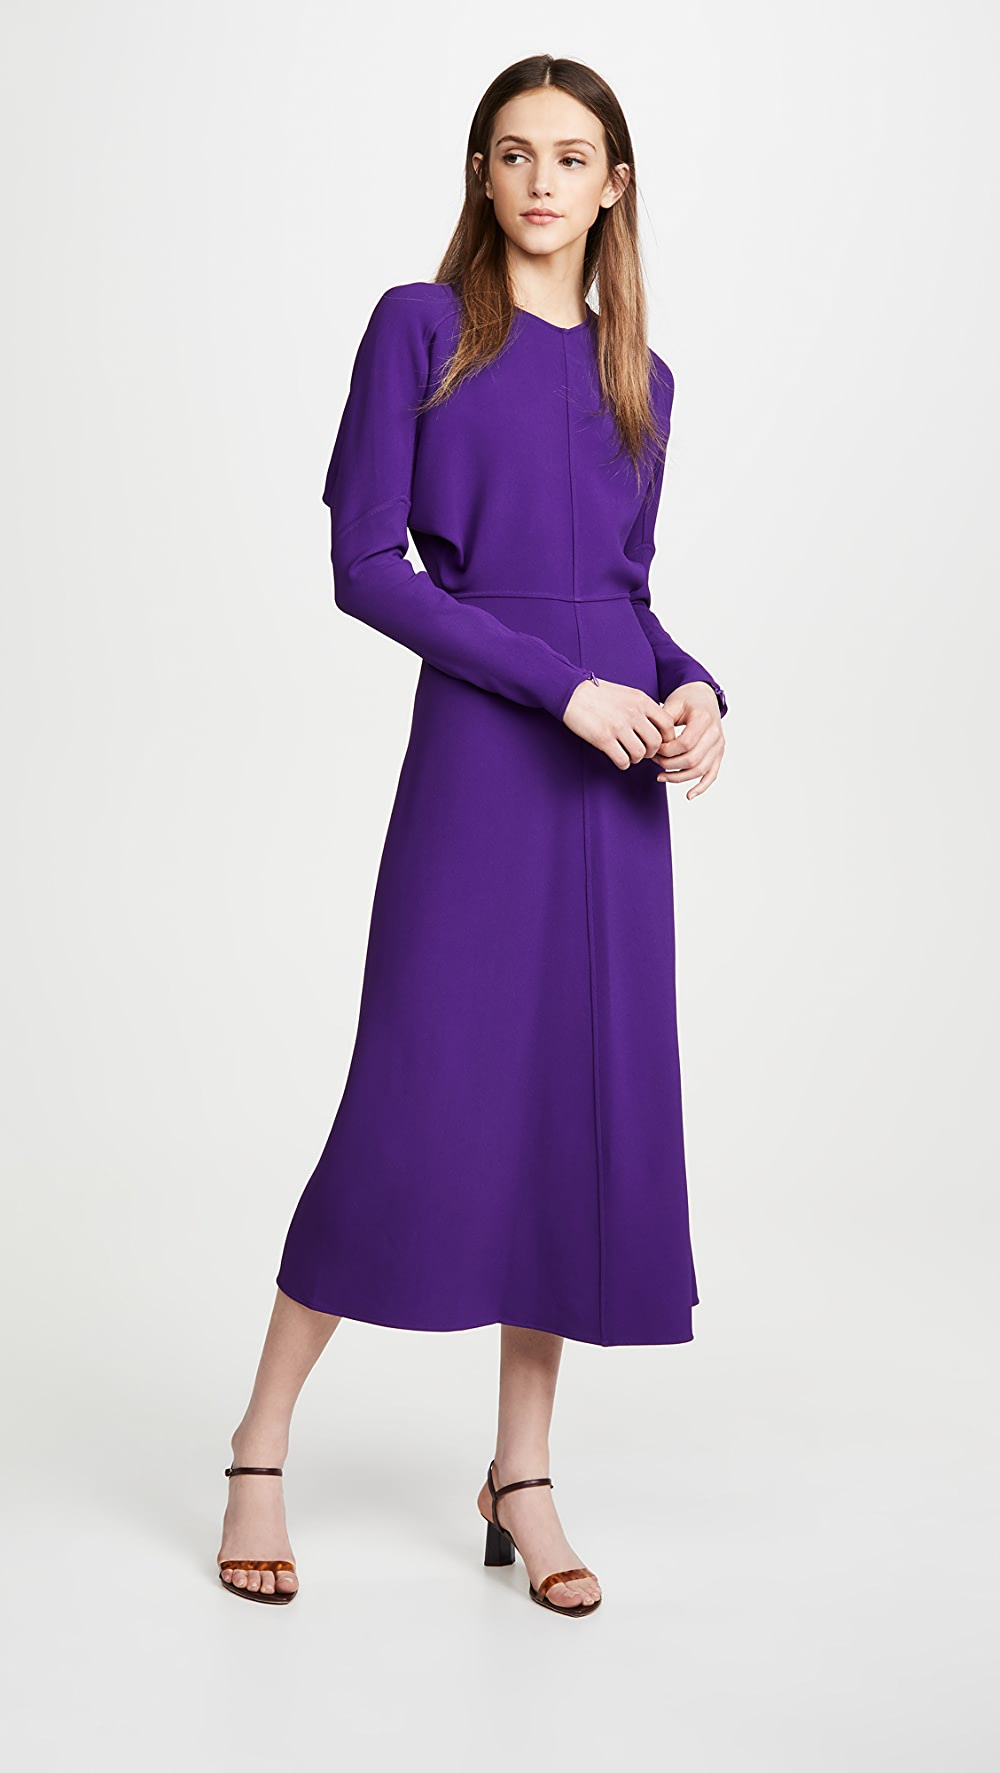 Open-Minded Victoria Beckham - Long Sleeve Dolman Midi Orders Are Welcome.